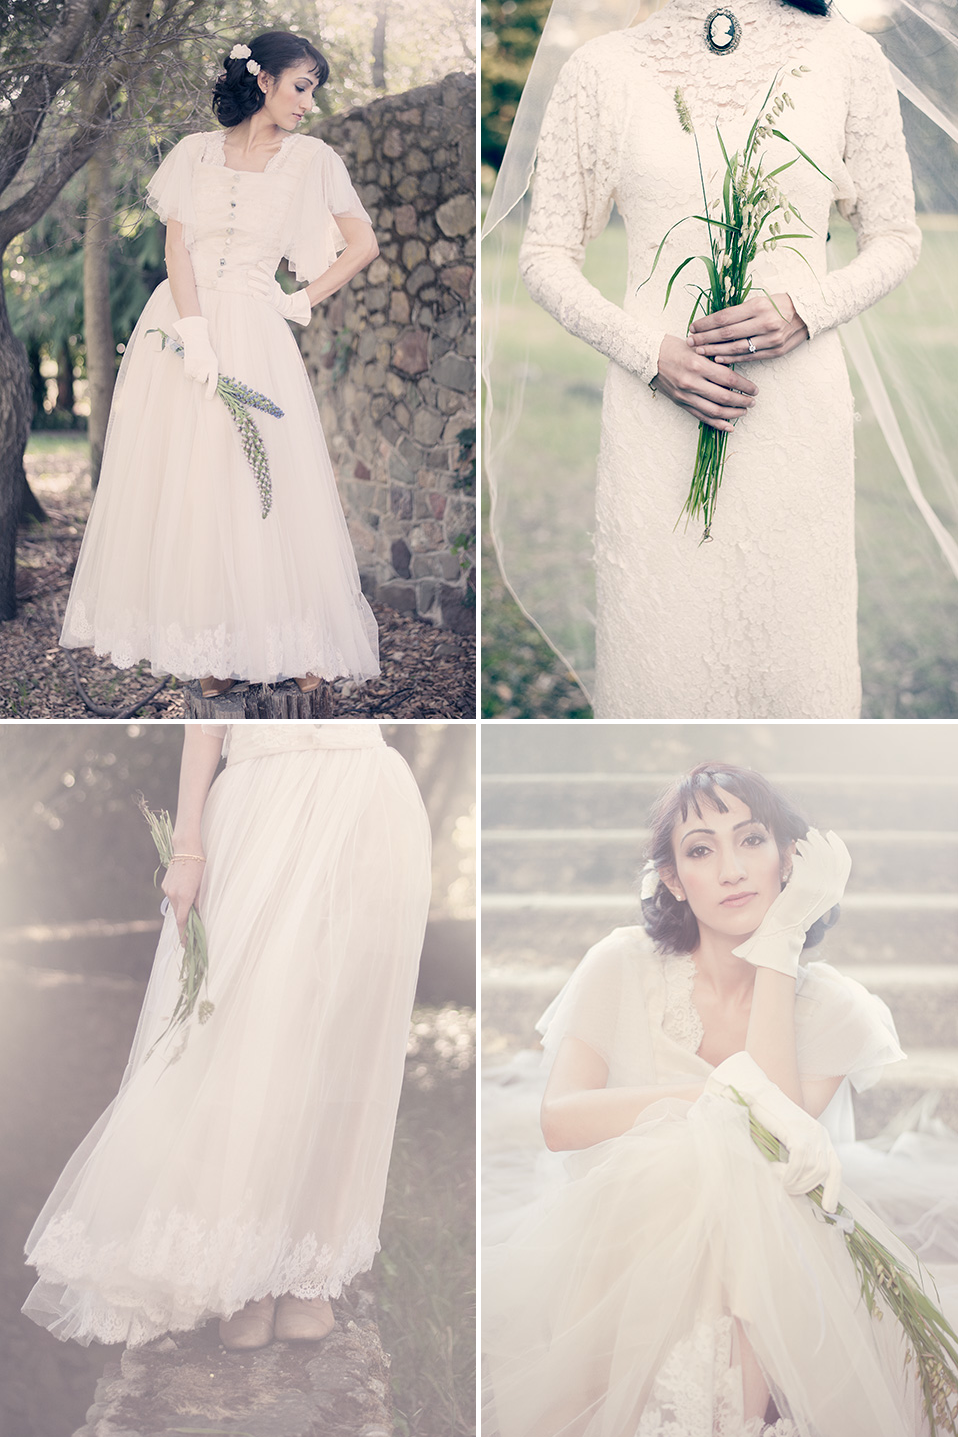 Romantic-wedding-inspiration-vintage-inspired-bridal-style.original